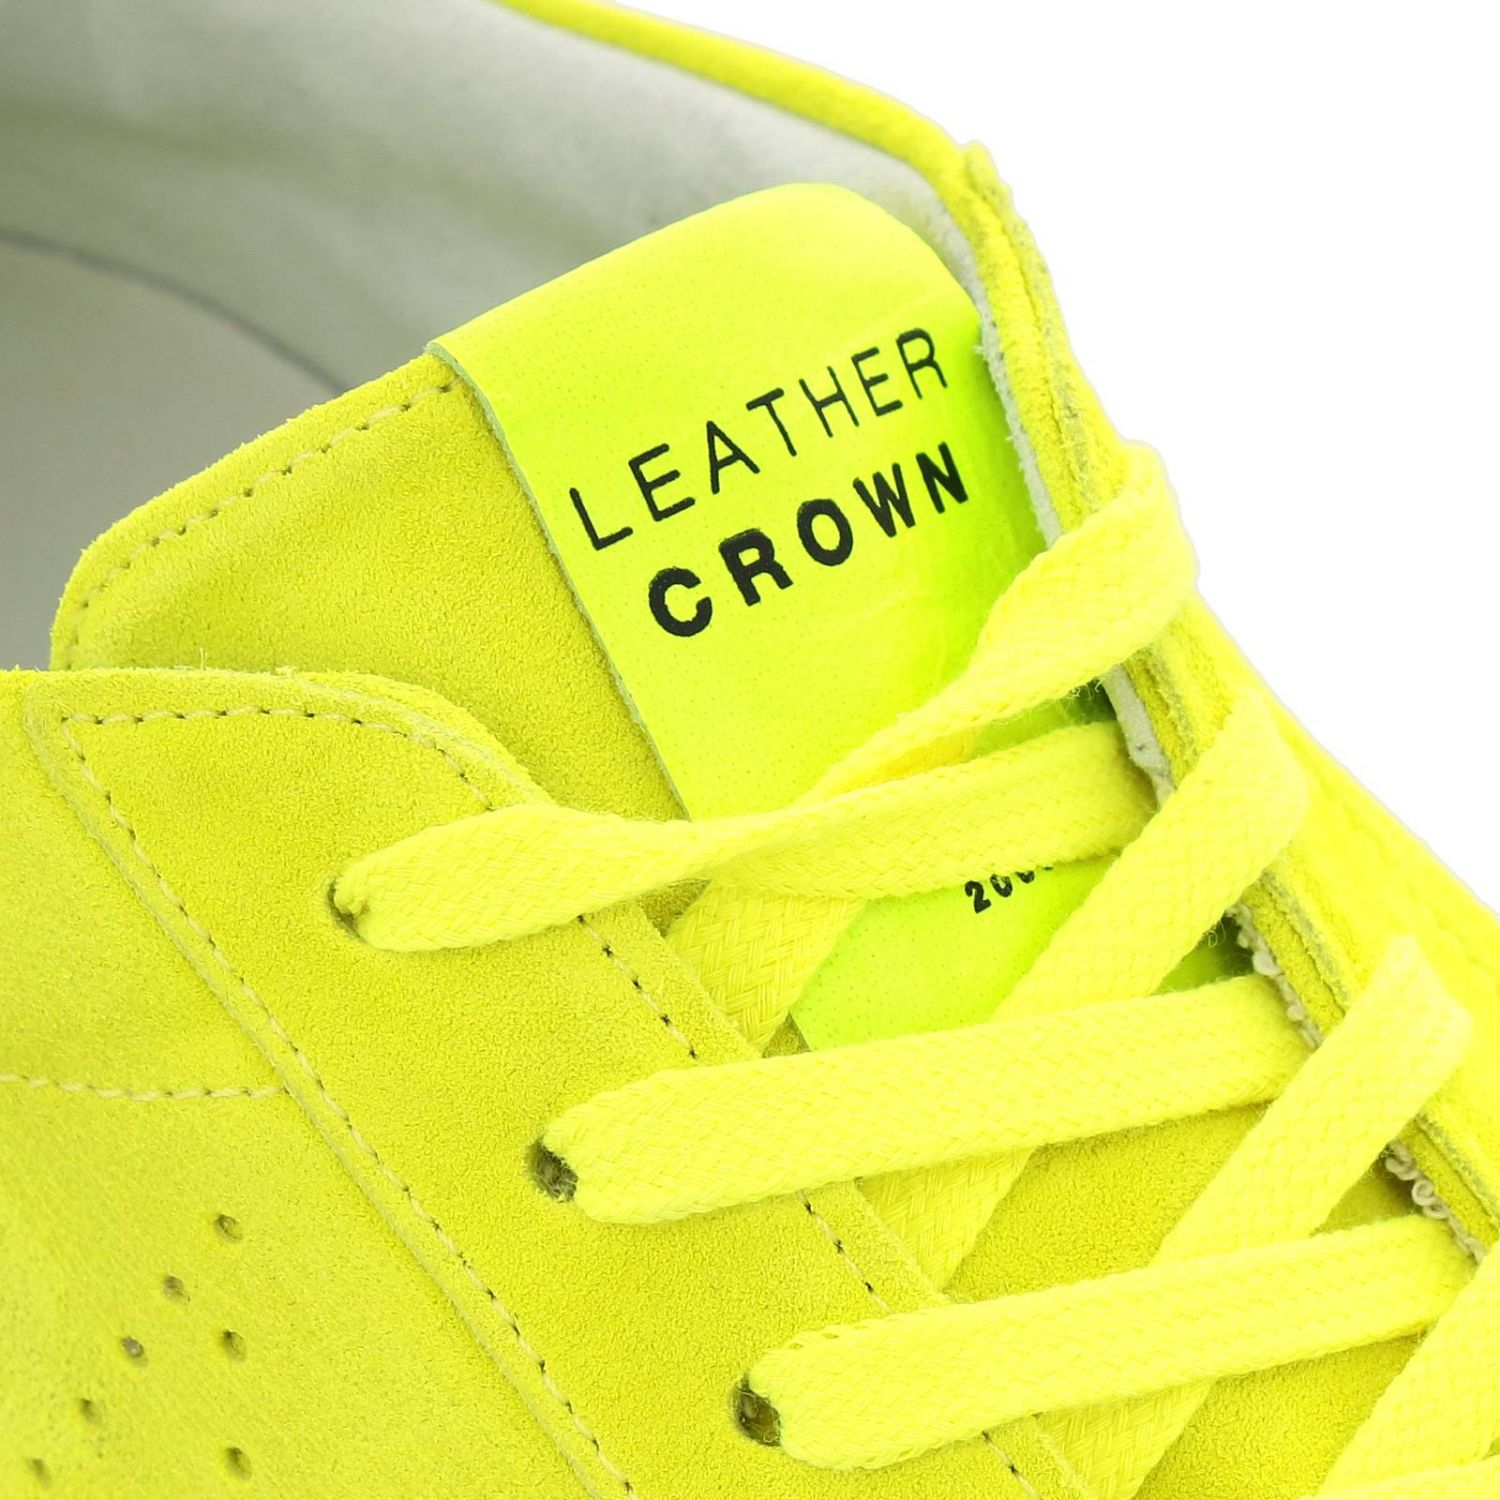 Trainers men Leather Crown yellow 3